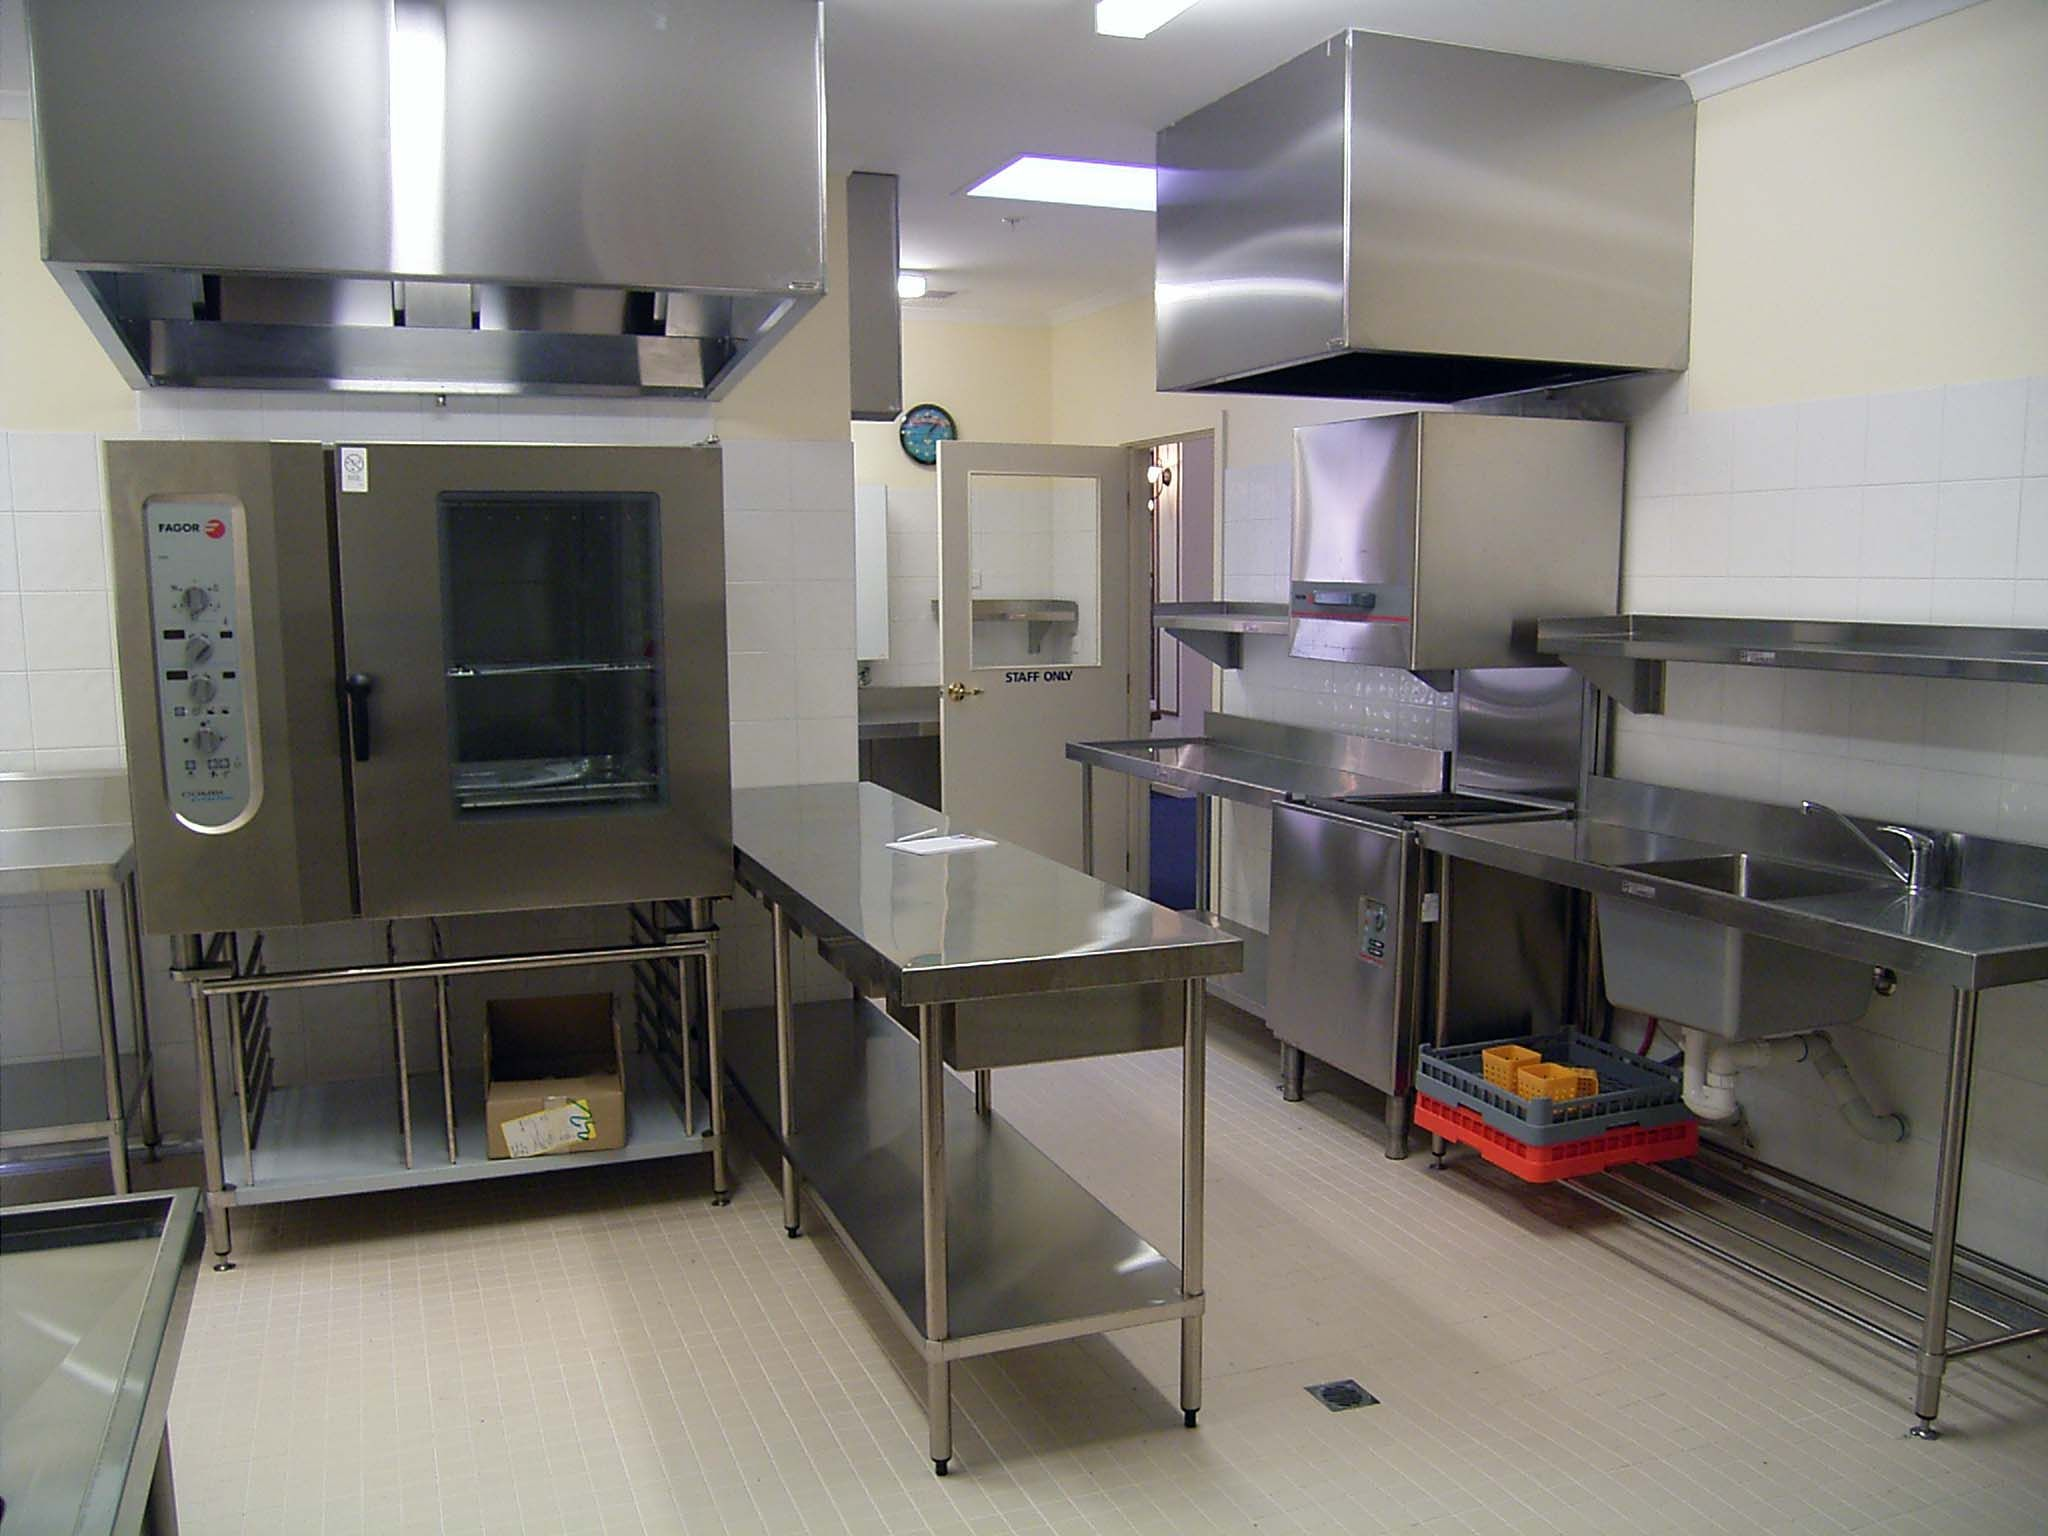 Pizza Restaurant Kitchen Layout about commercial kitchen design source:- google.pk what began